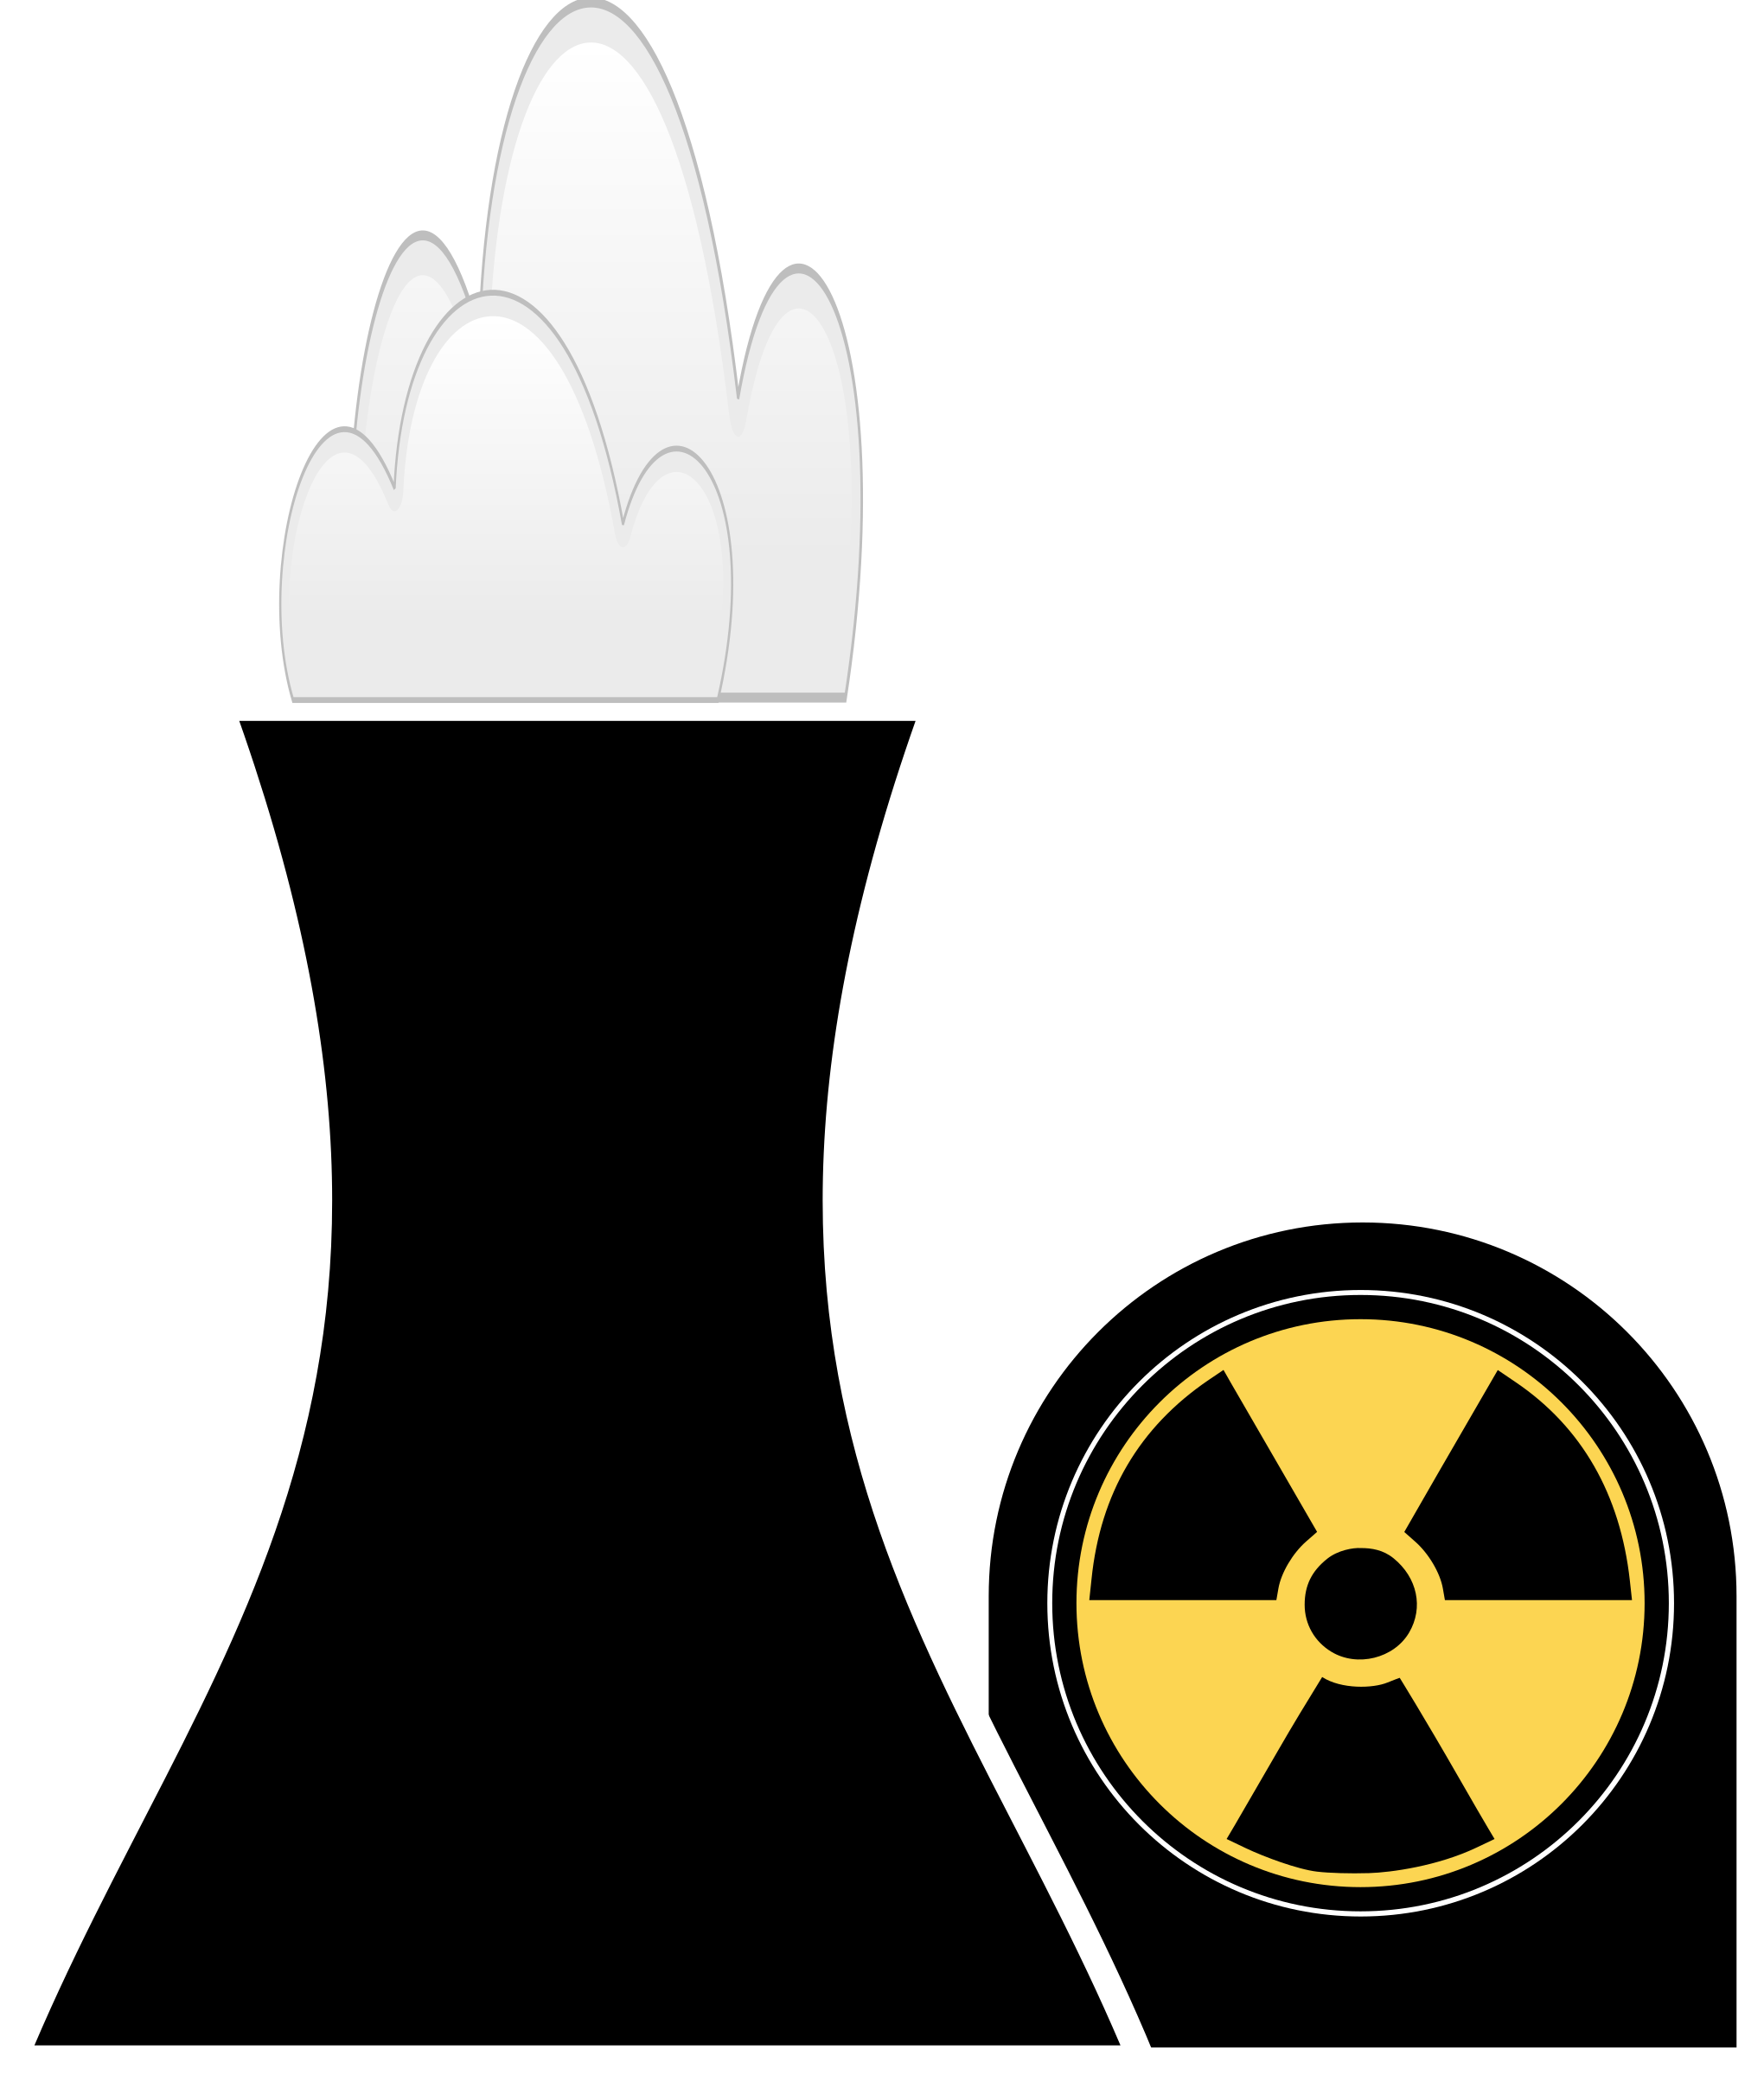 industry clipart nuclear factory